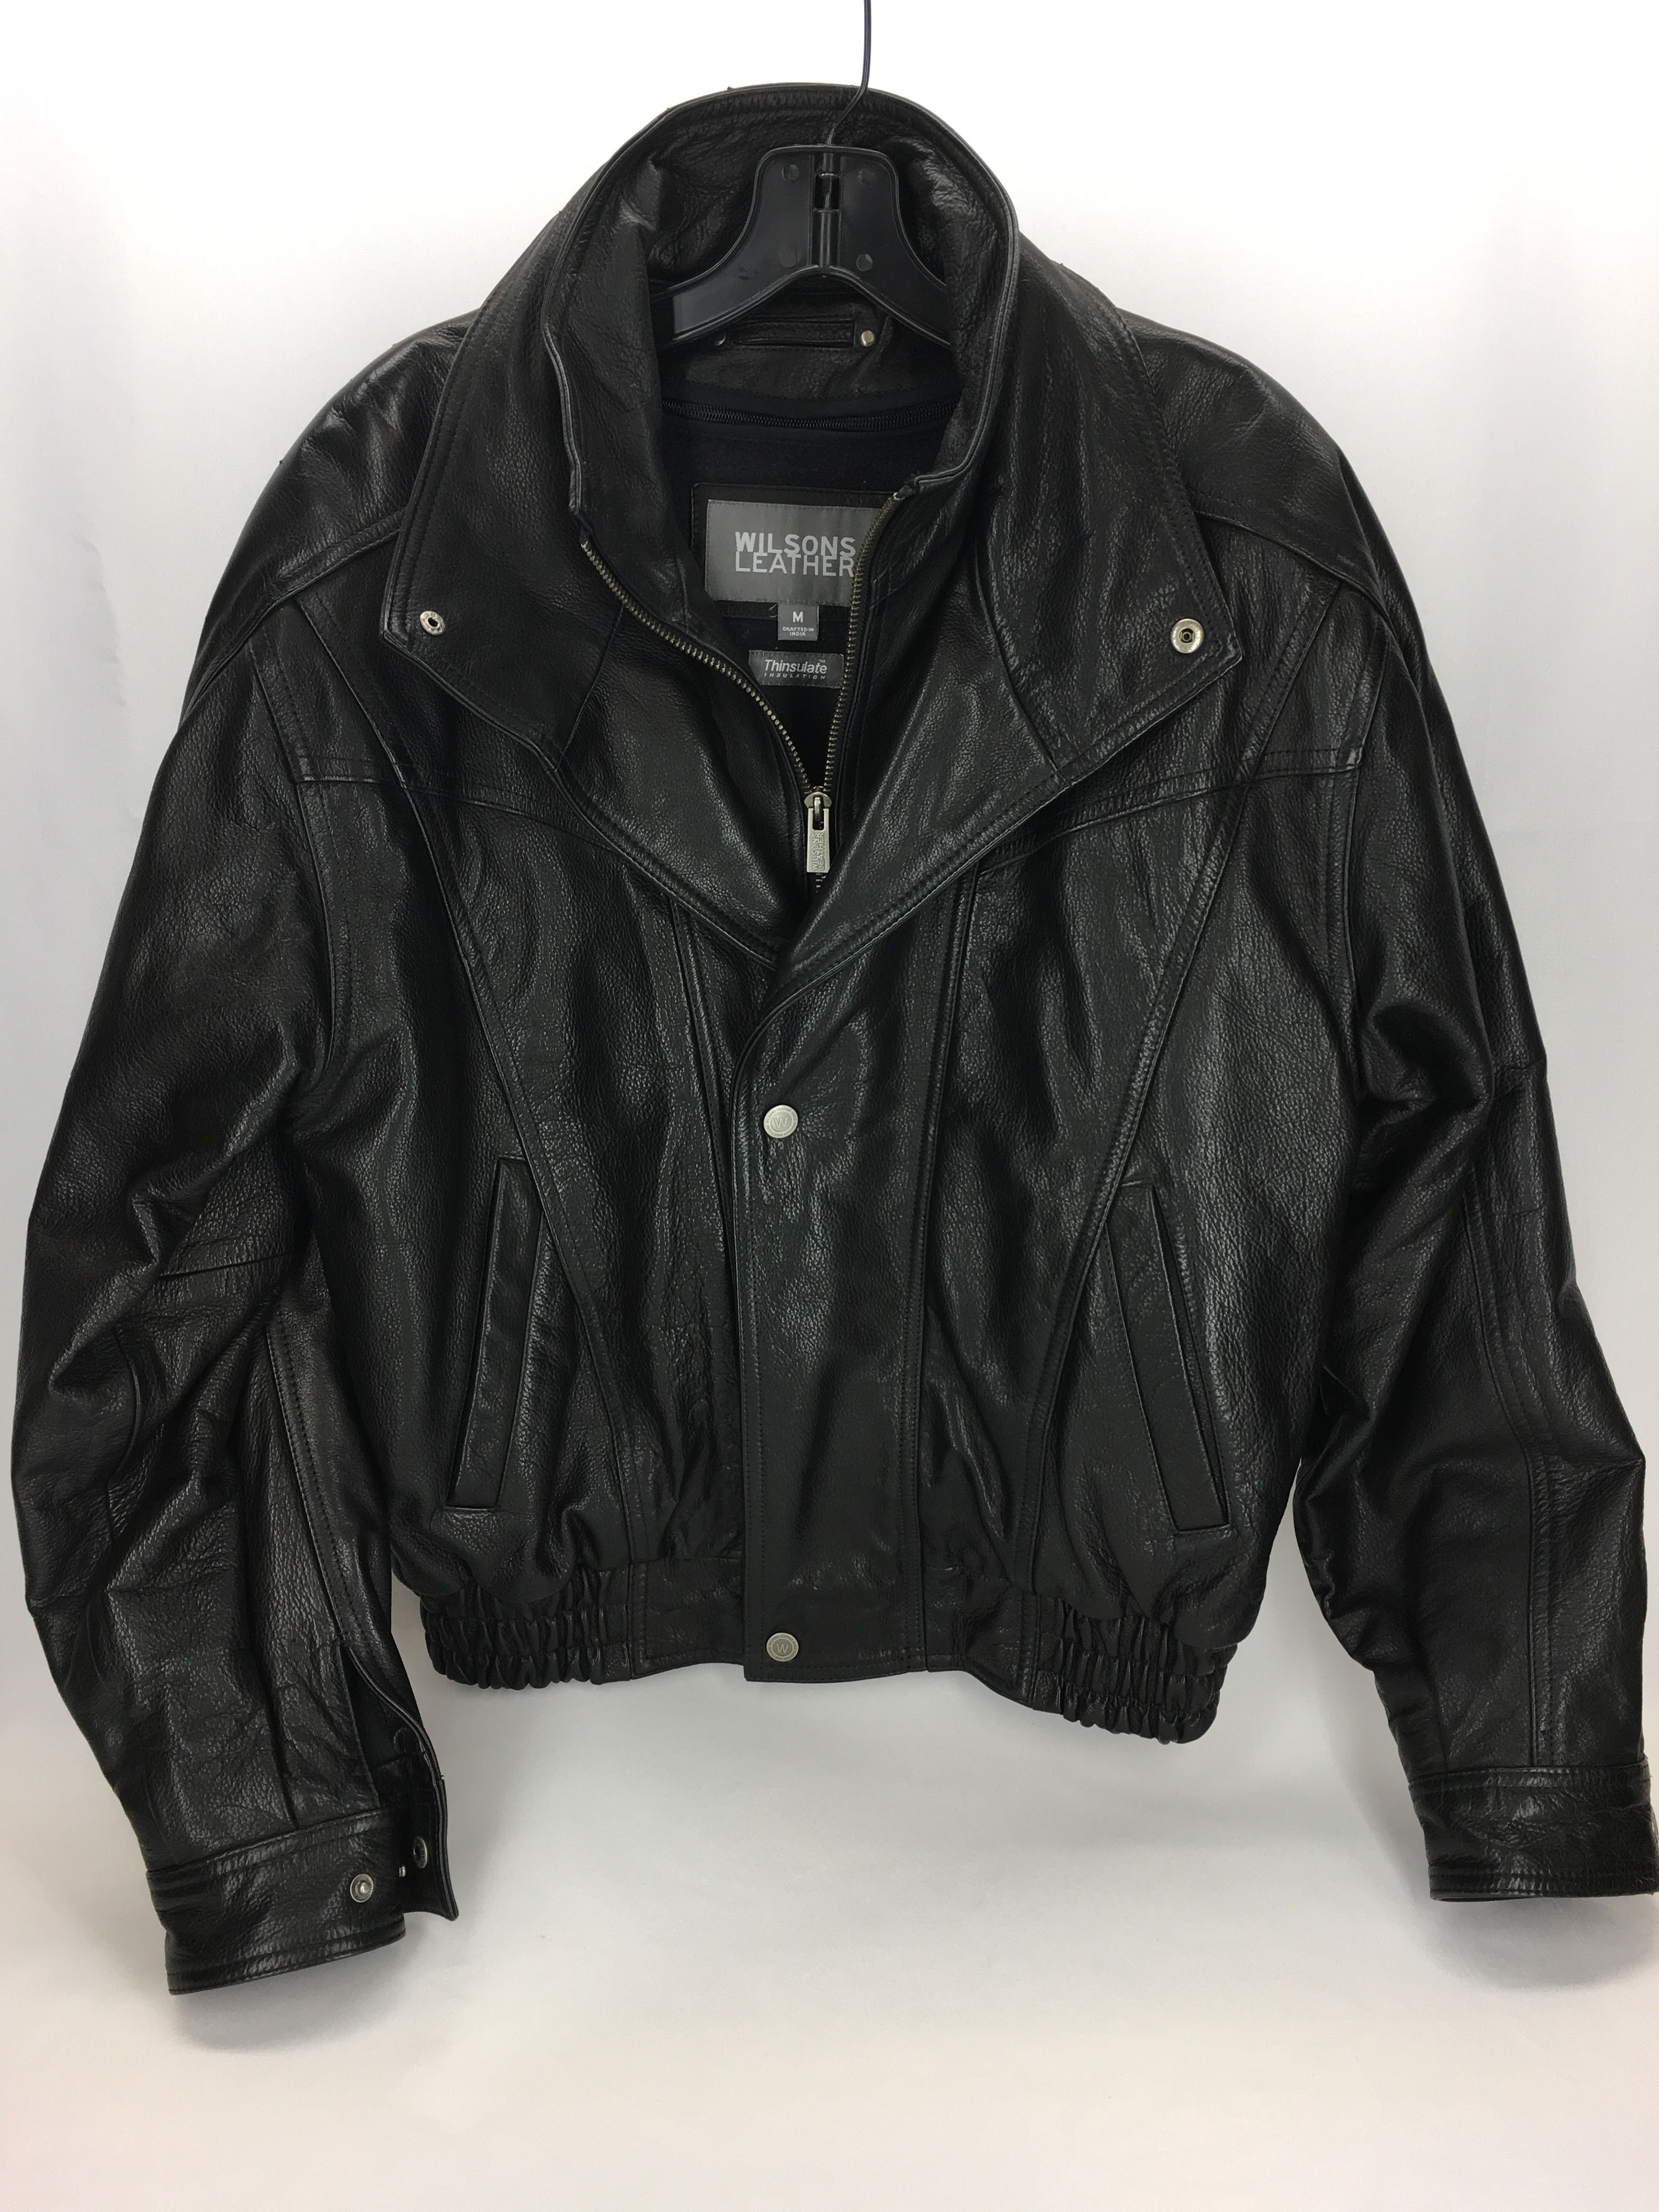 Wilson's Leather black bomber jacket for men Black